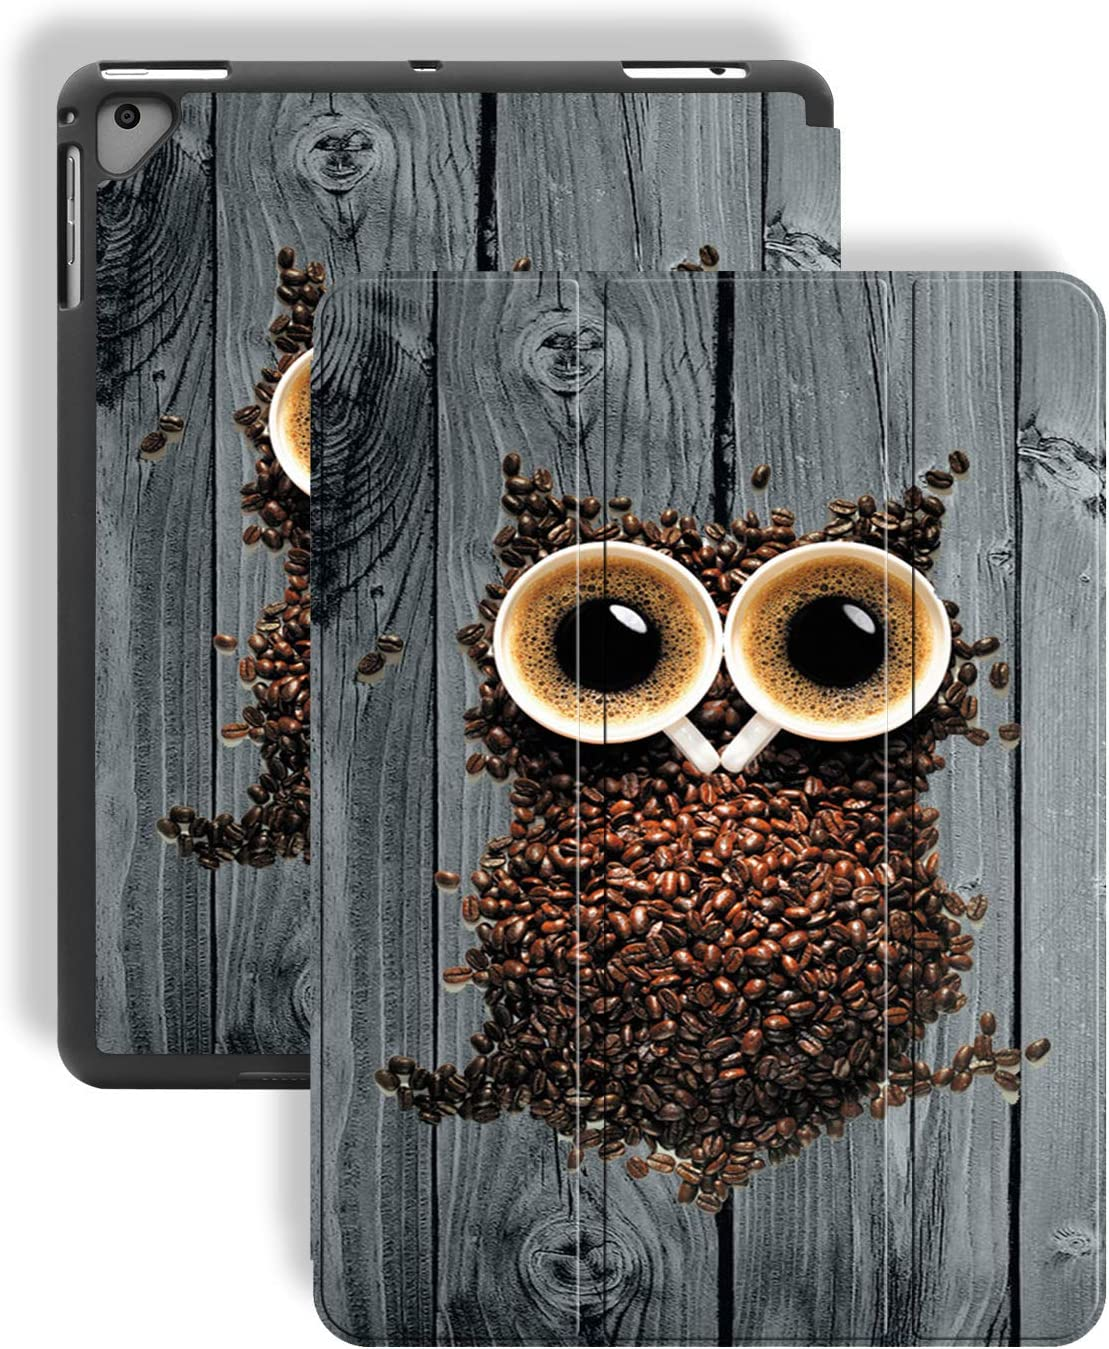 iPad 9.7 2018/2017/iPad Air 2 Case,Cute Coffee Owl on Wood Pattern PU Leather Slim Soft TPU Back with Pencil Holder Cover for iPad 9.7 Inch 5th/6th Generation(Auto Wake/Sleep)